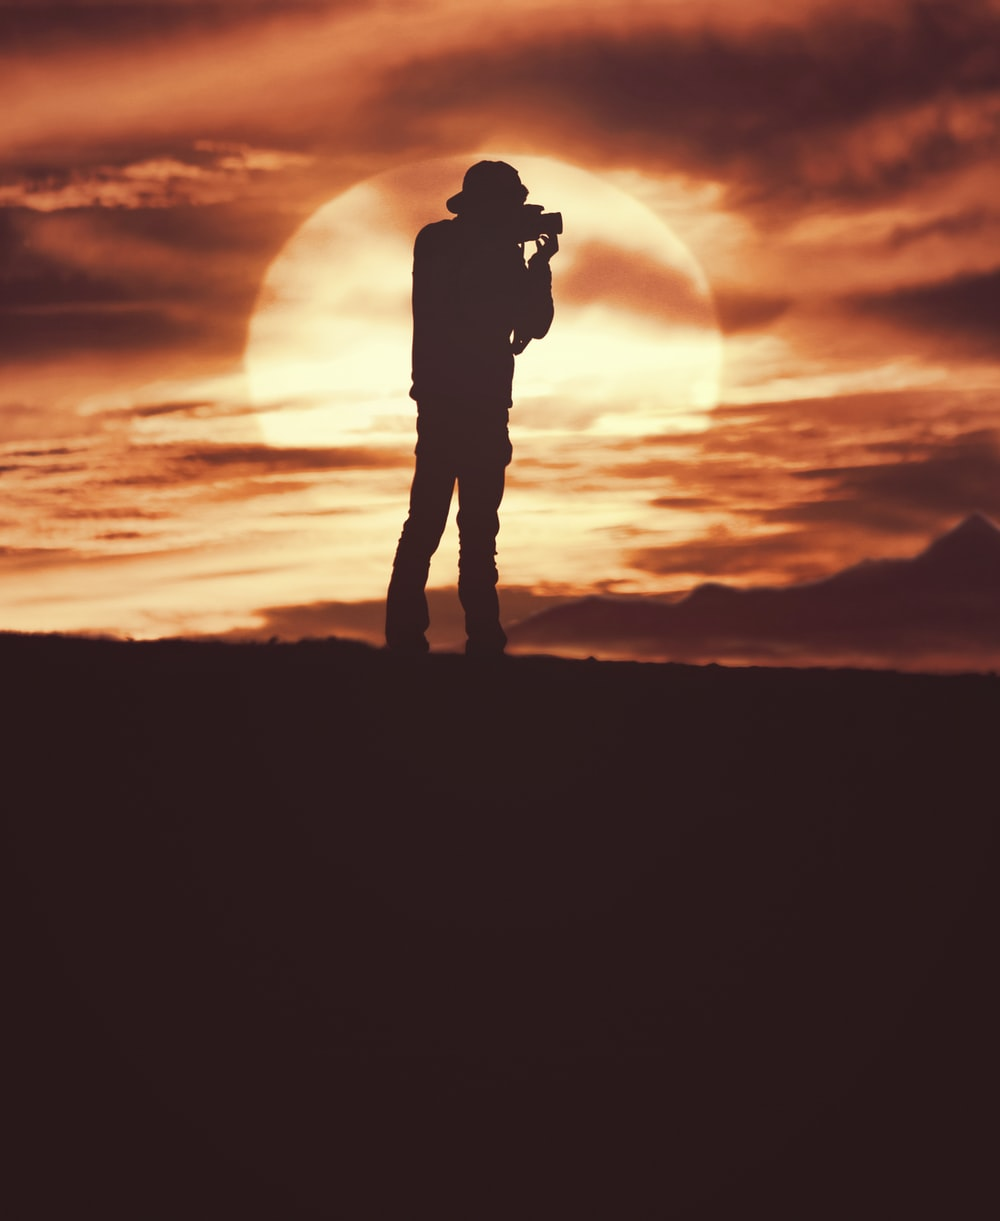 silhouette of man standing during daytime